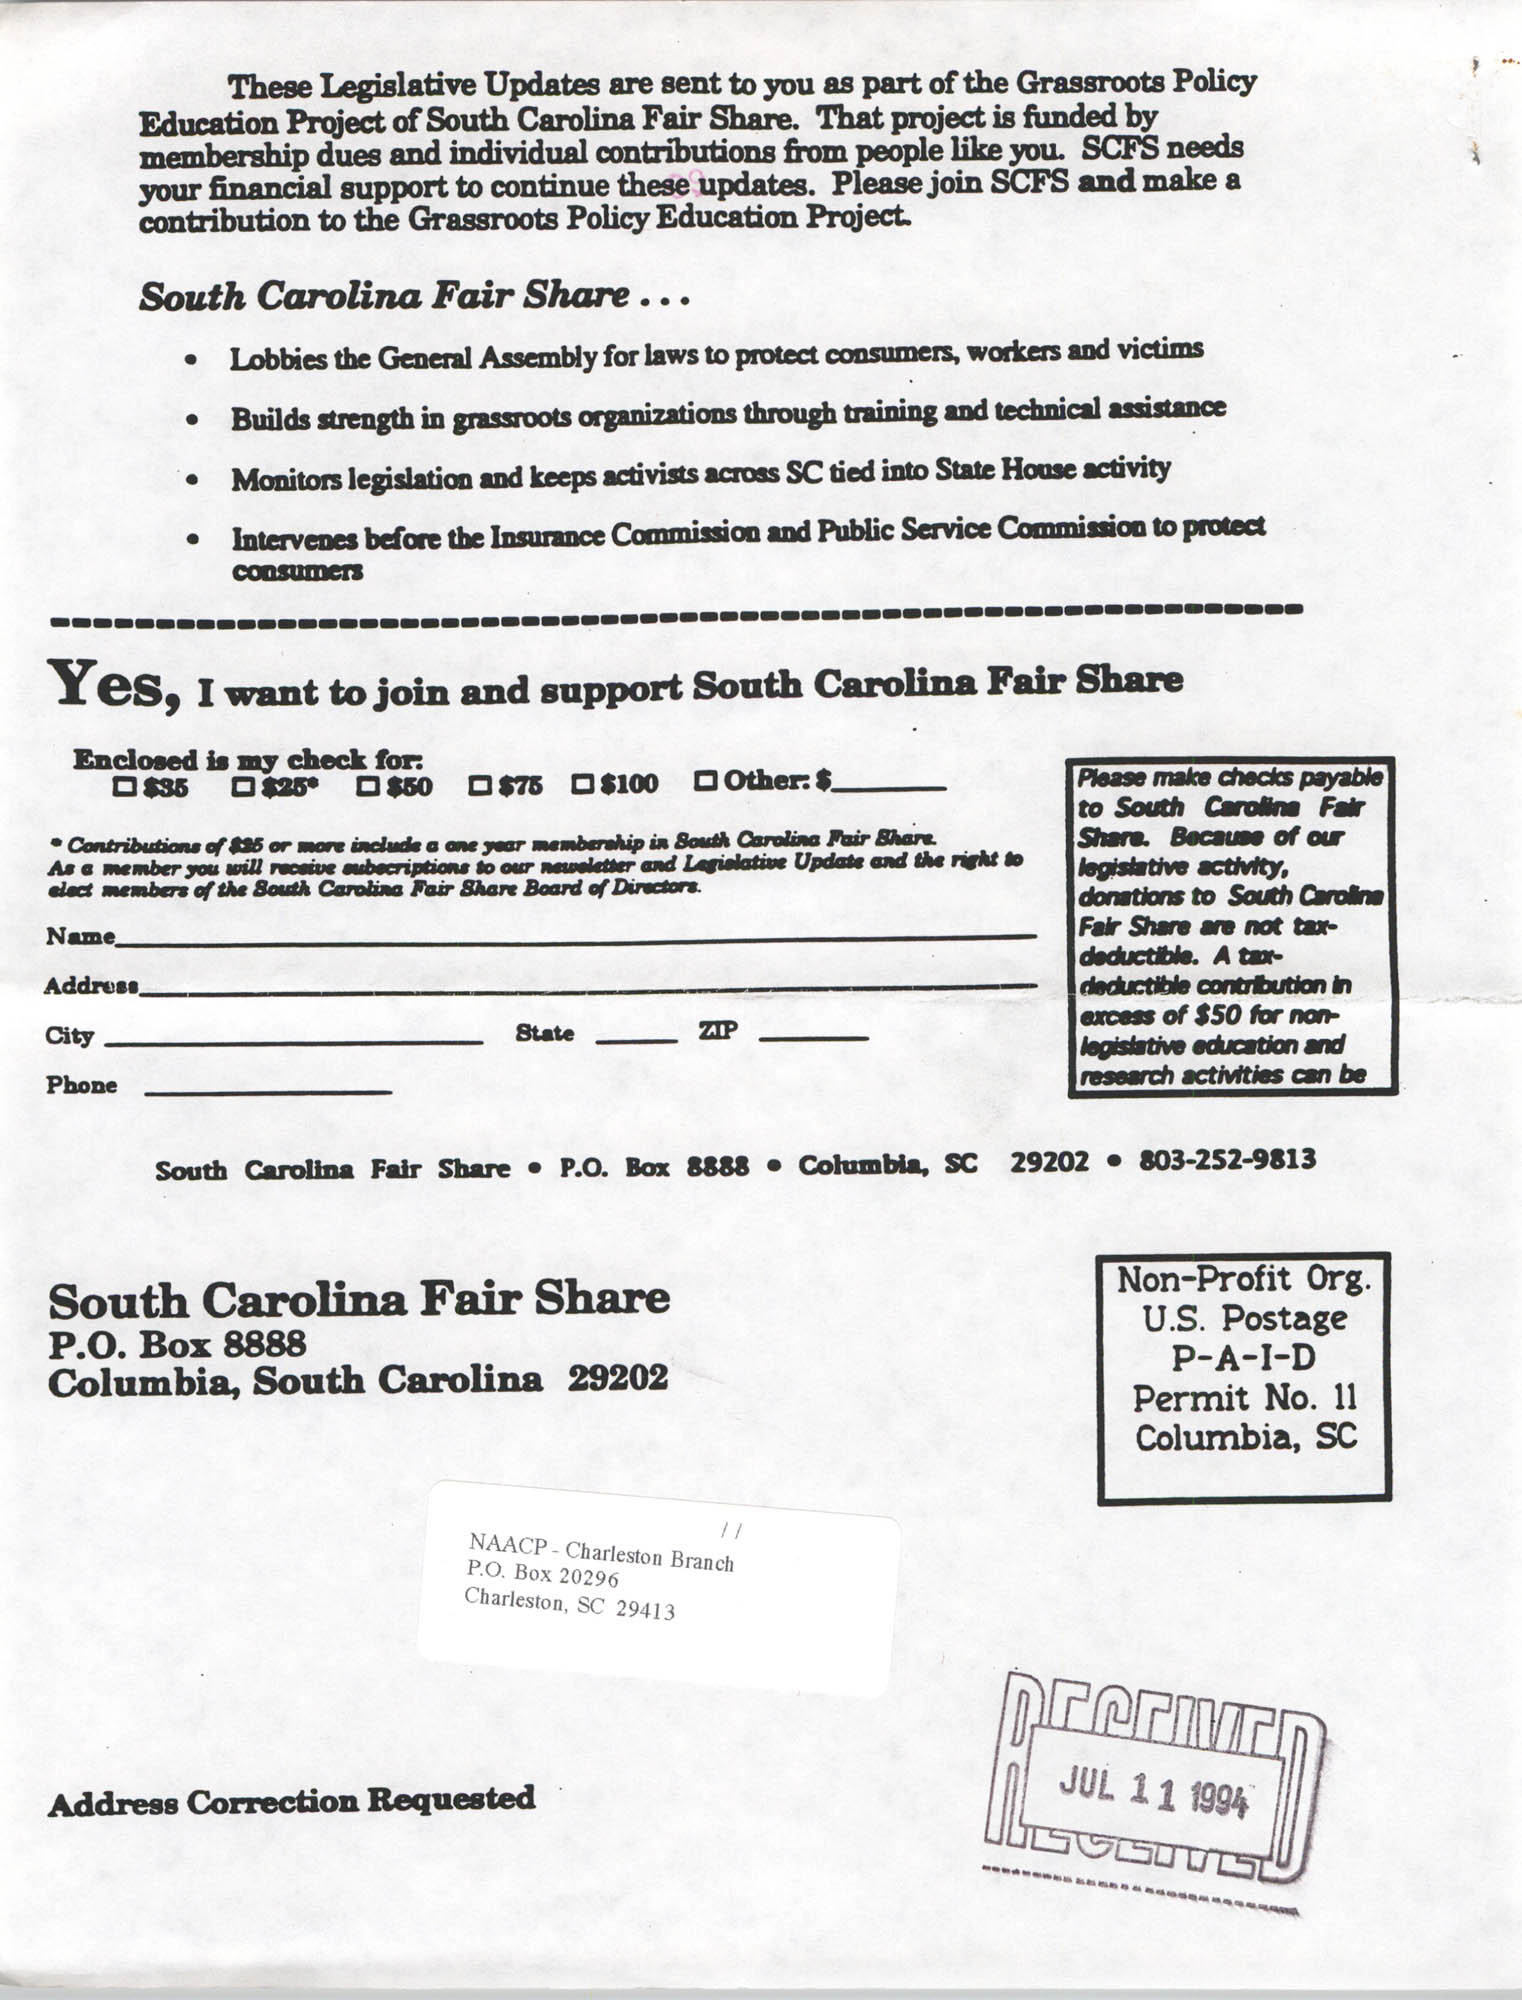 South Carolina Fair Share Legislative Update, June 30, 1994, Page 12